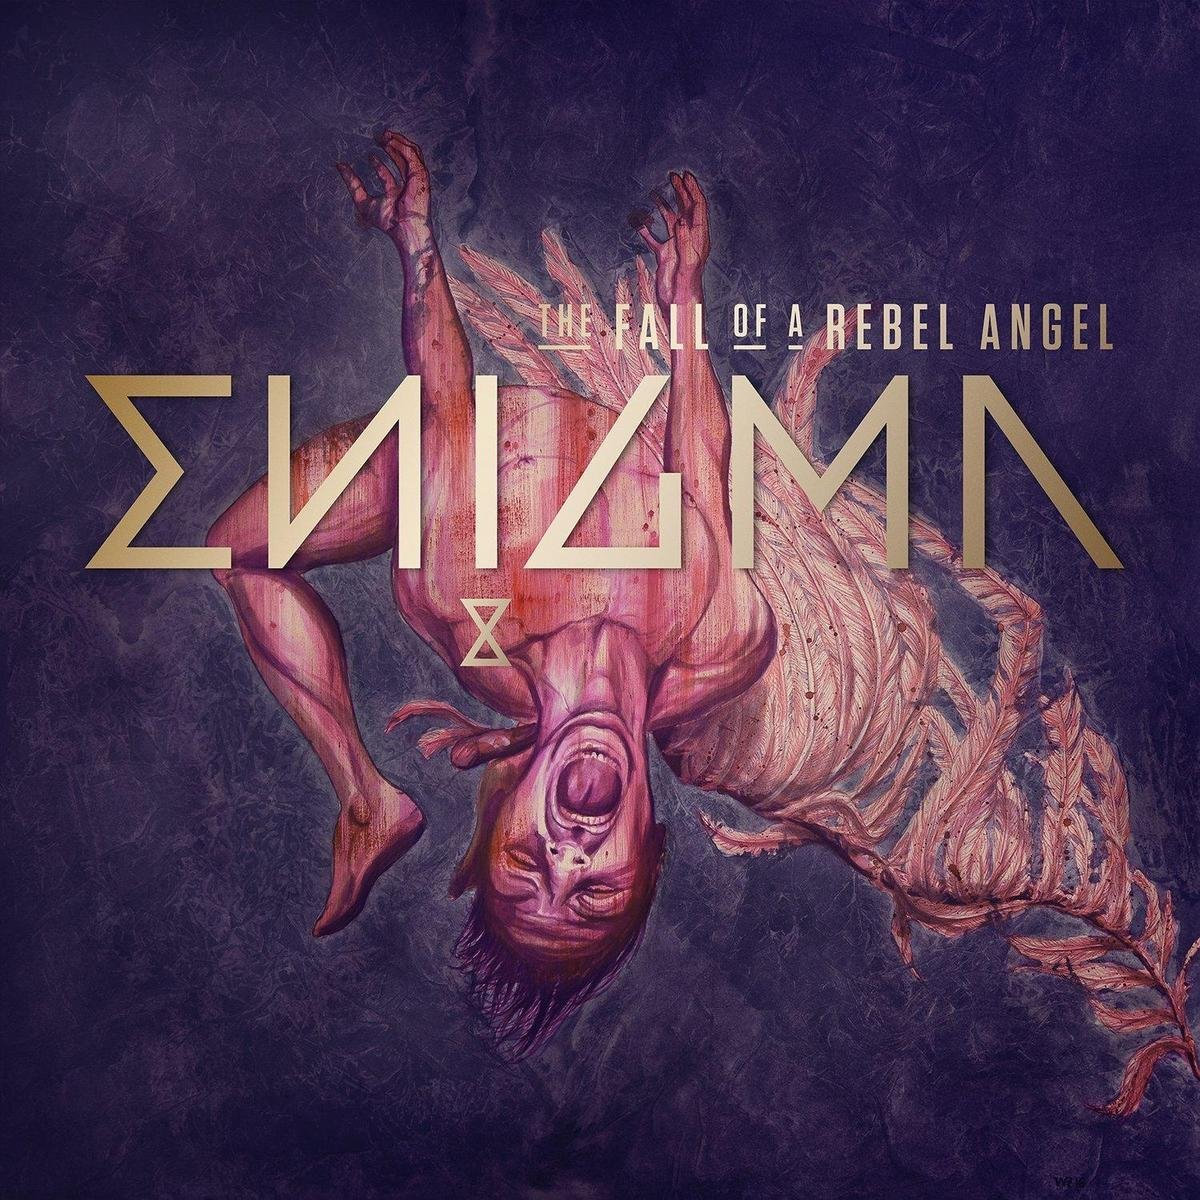 The fall of the rebel angel (CD X4) - ENIGMA